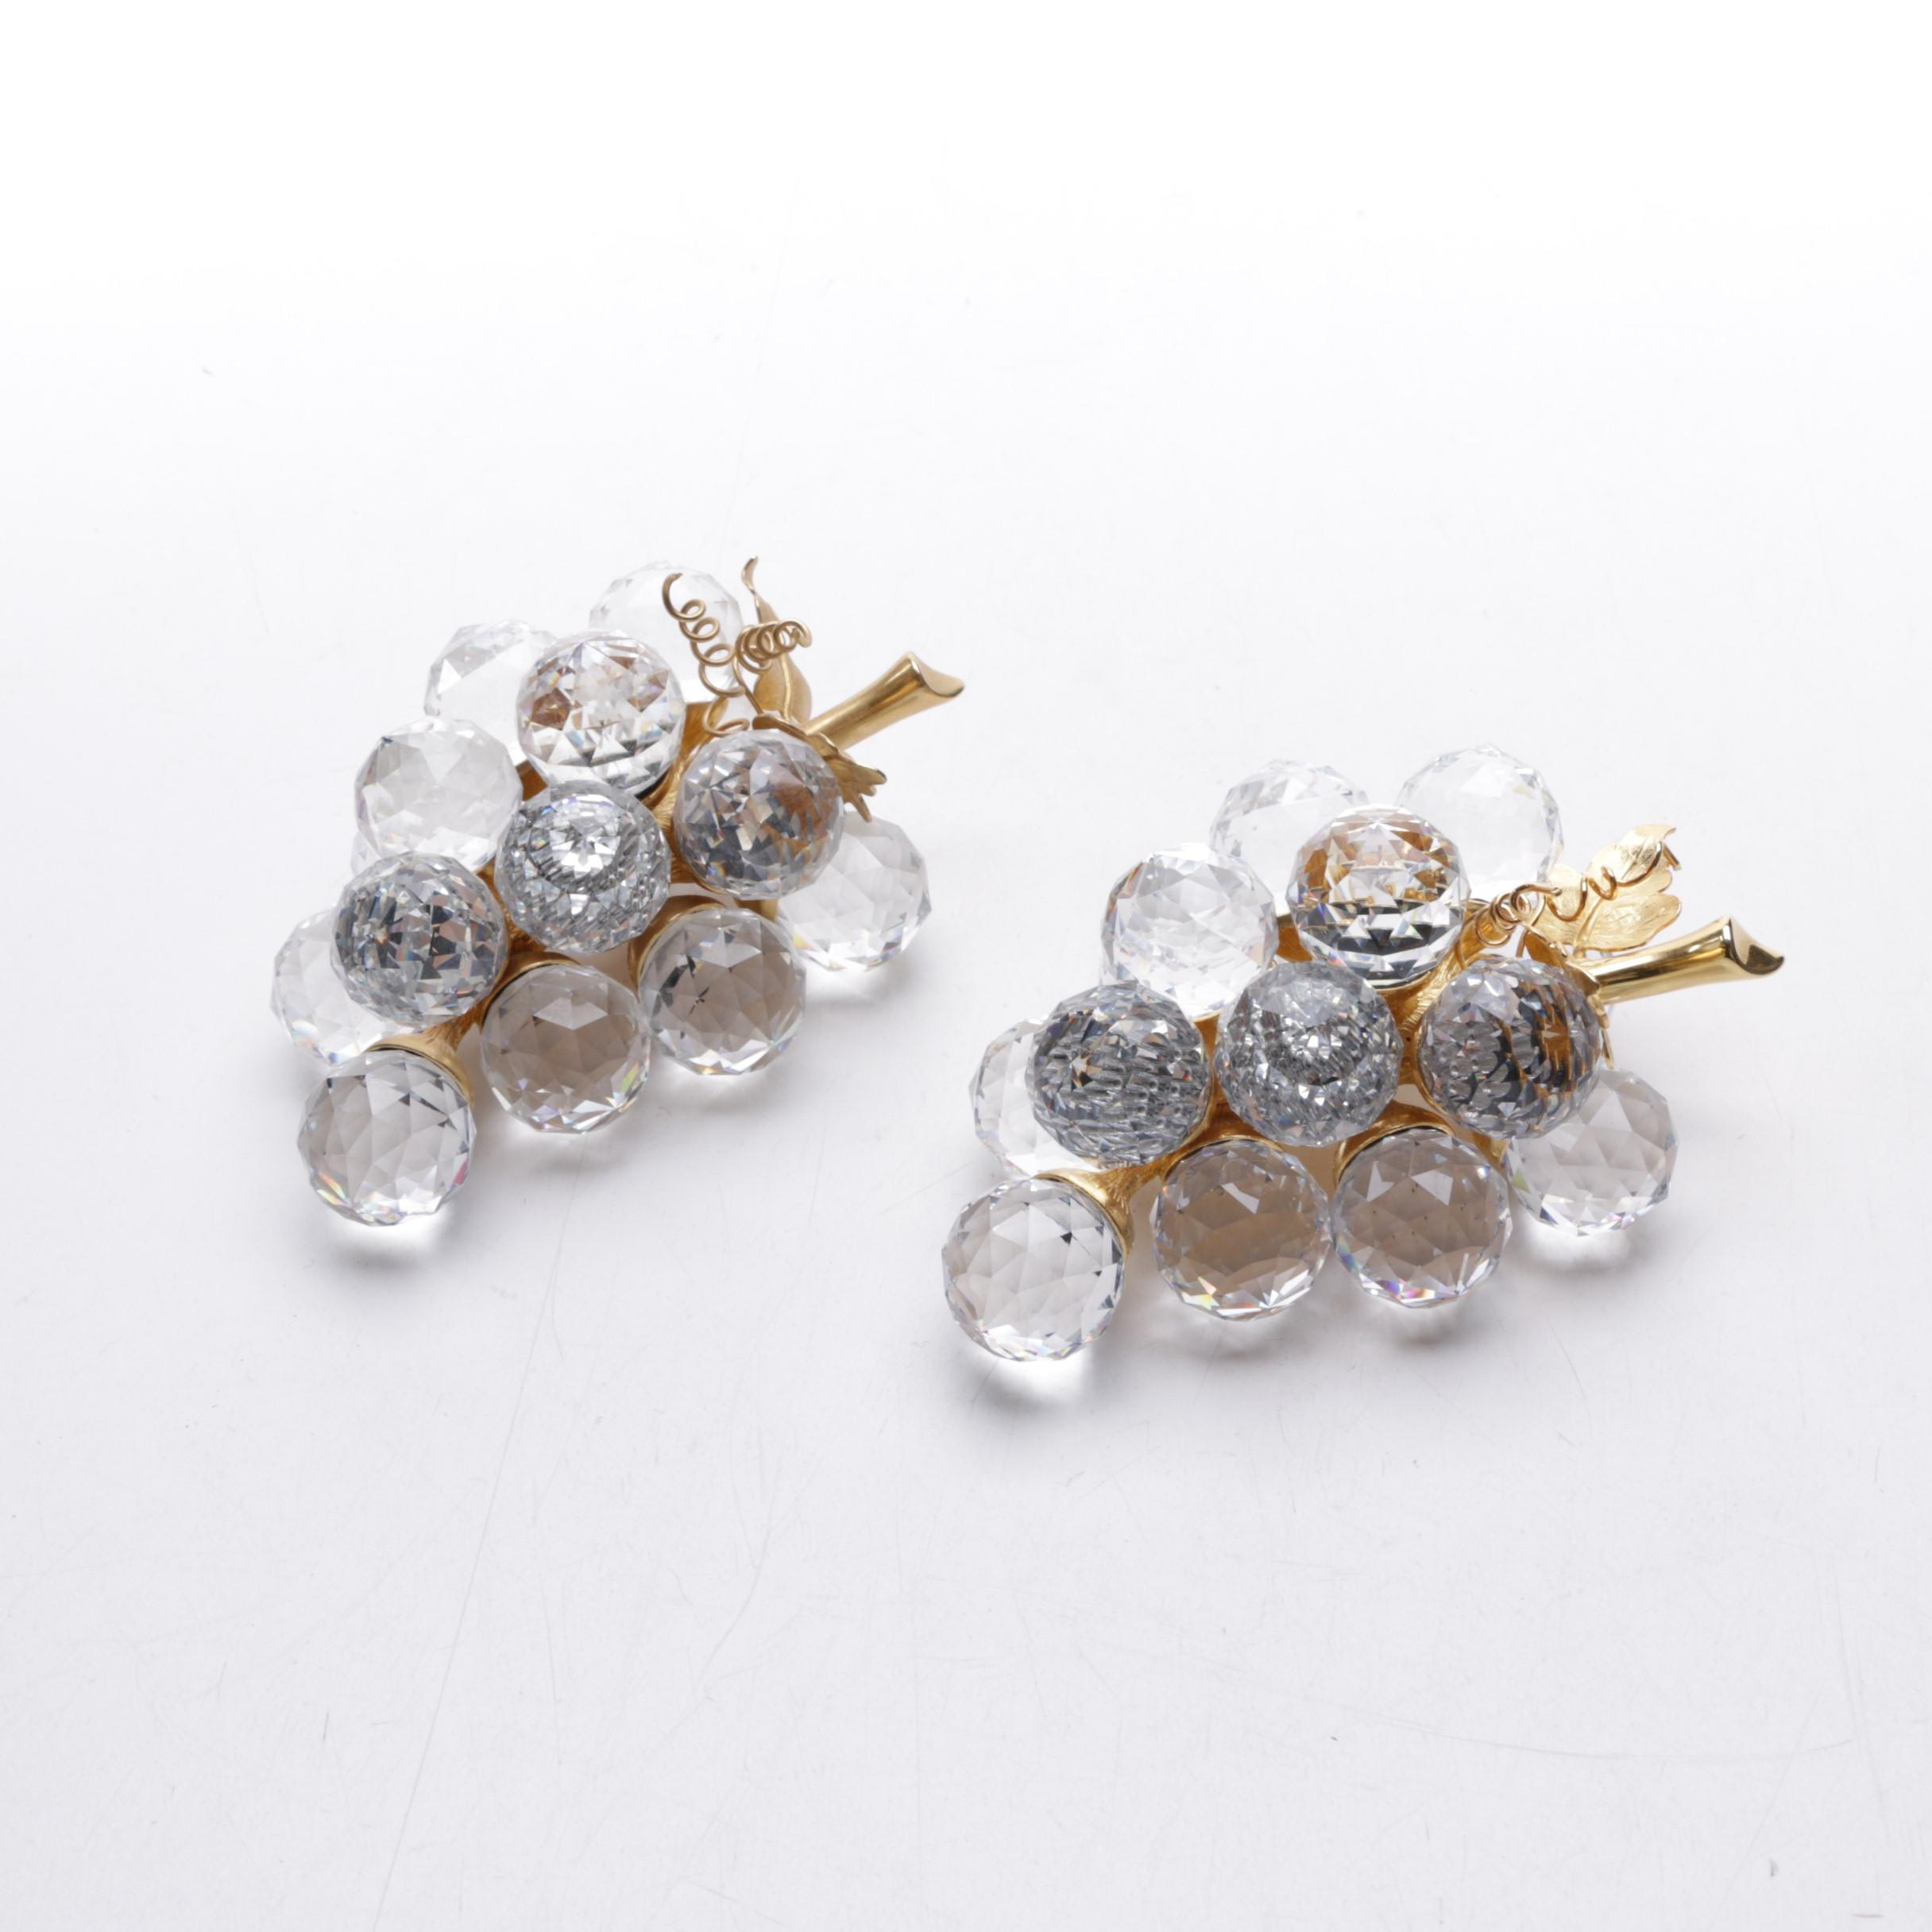 Swarovski Decorative Crystal Grape Bunches